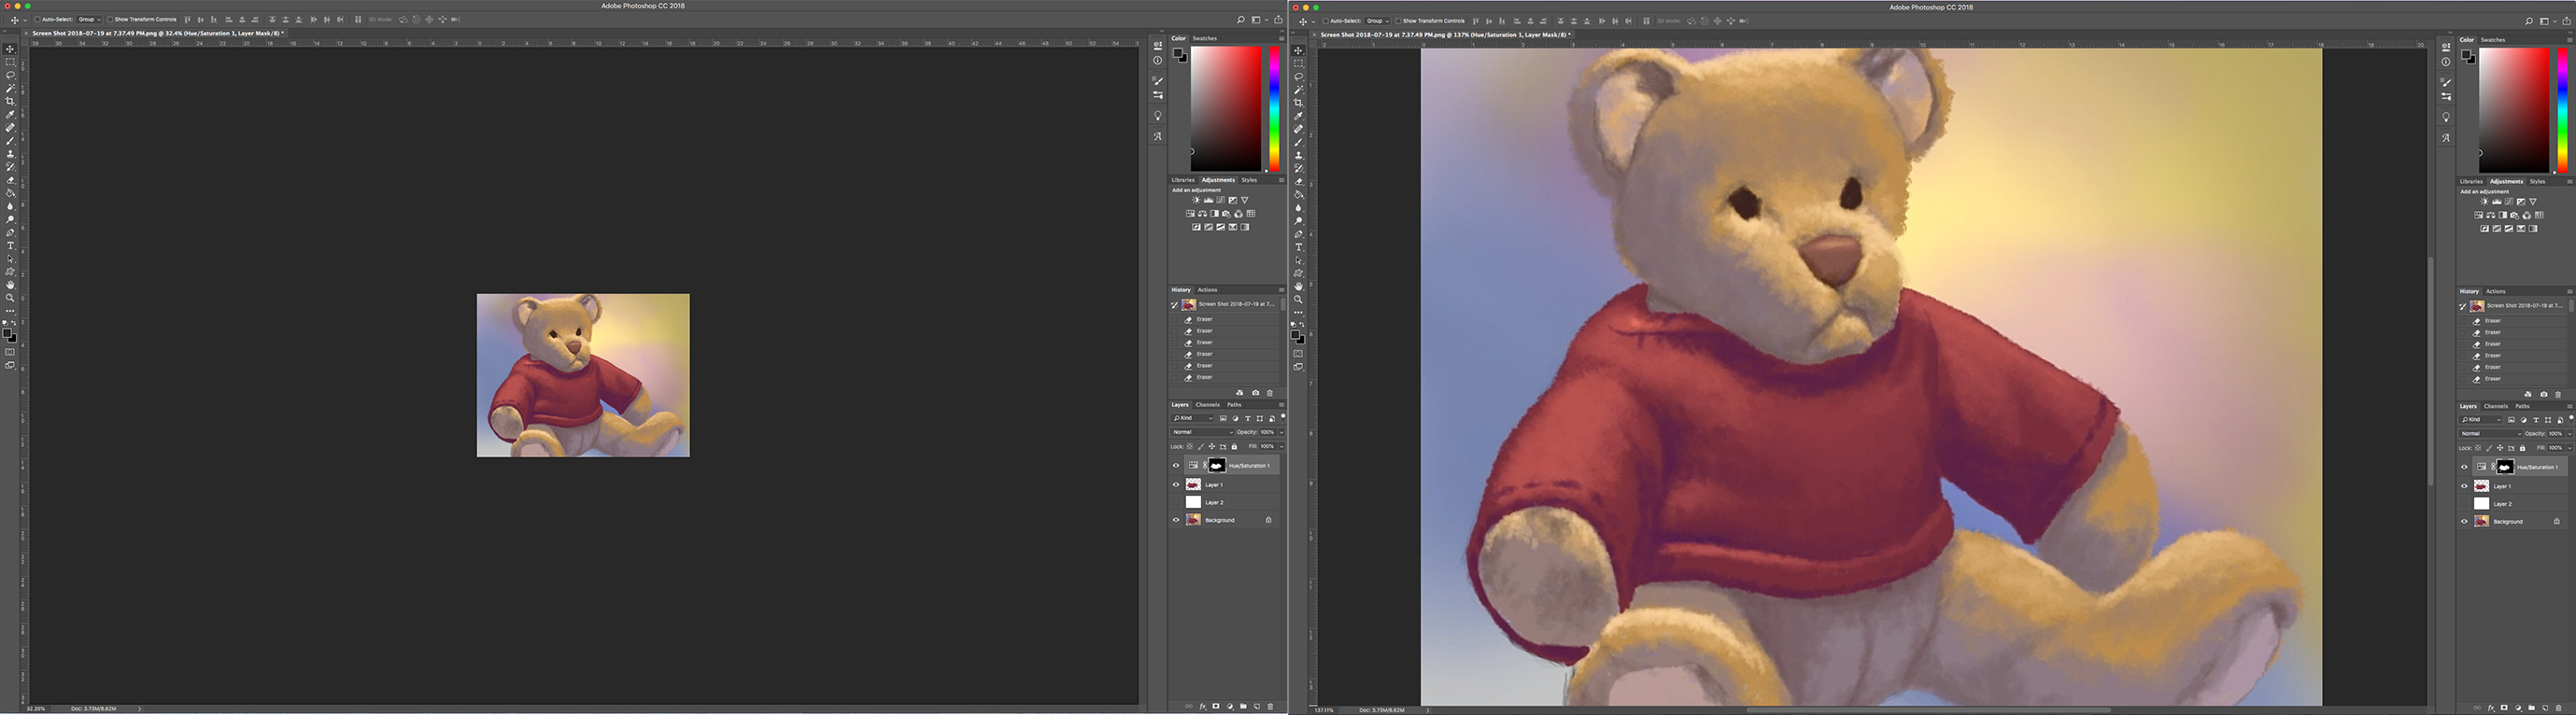 Seeing the object far and close-up when painting digitally on Photoshop